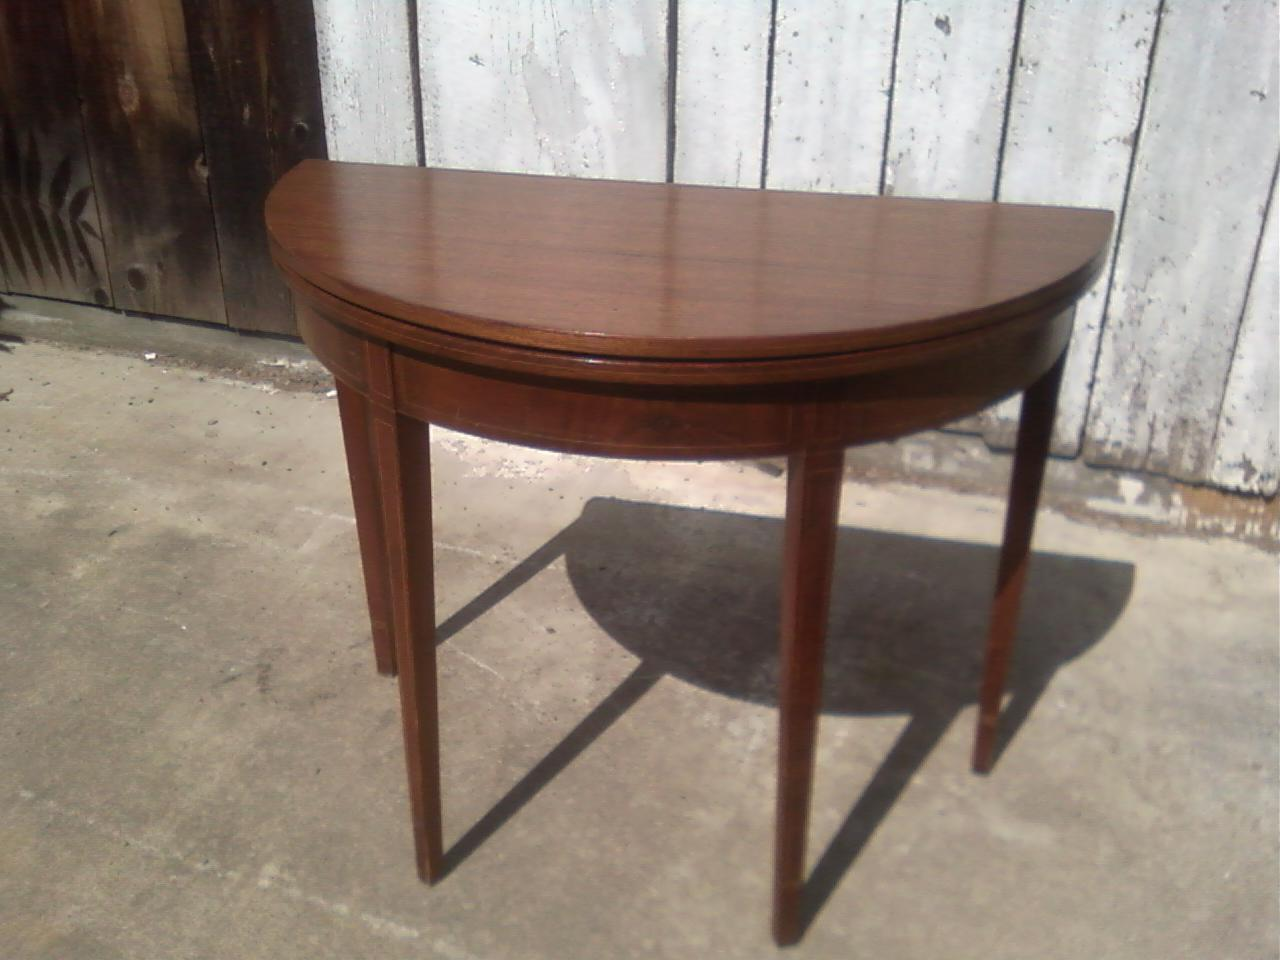 Charmant The Table Pictured In This Post Is For Sale. It Is A Mahogany Demilune Card  Table Made In The Hepplewhite Style. It Is Believed That The Table Is  Centennial ...